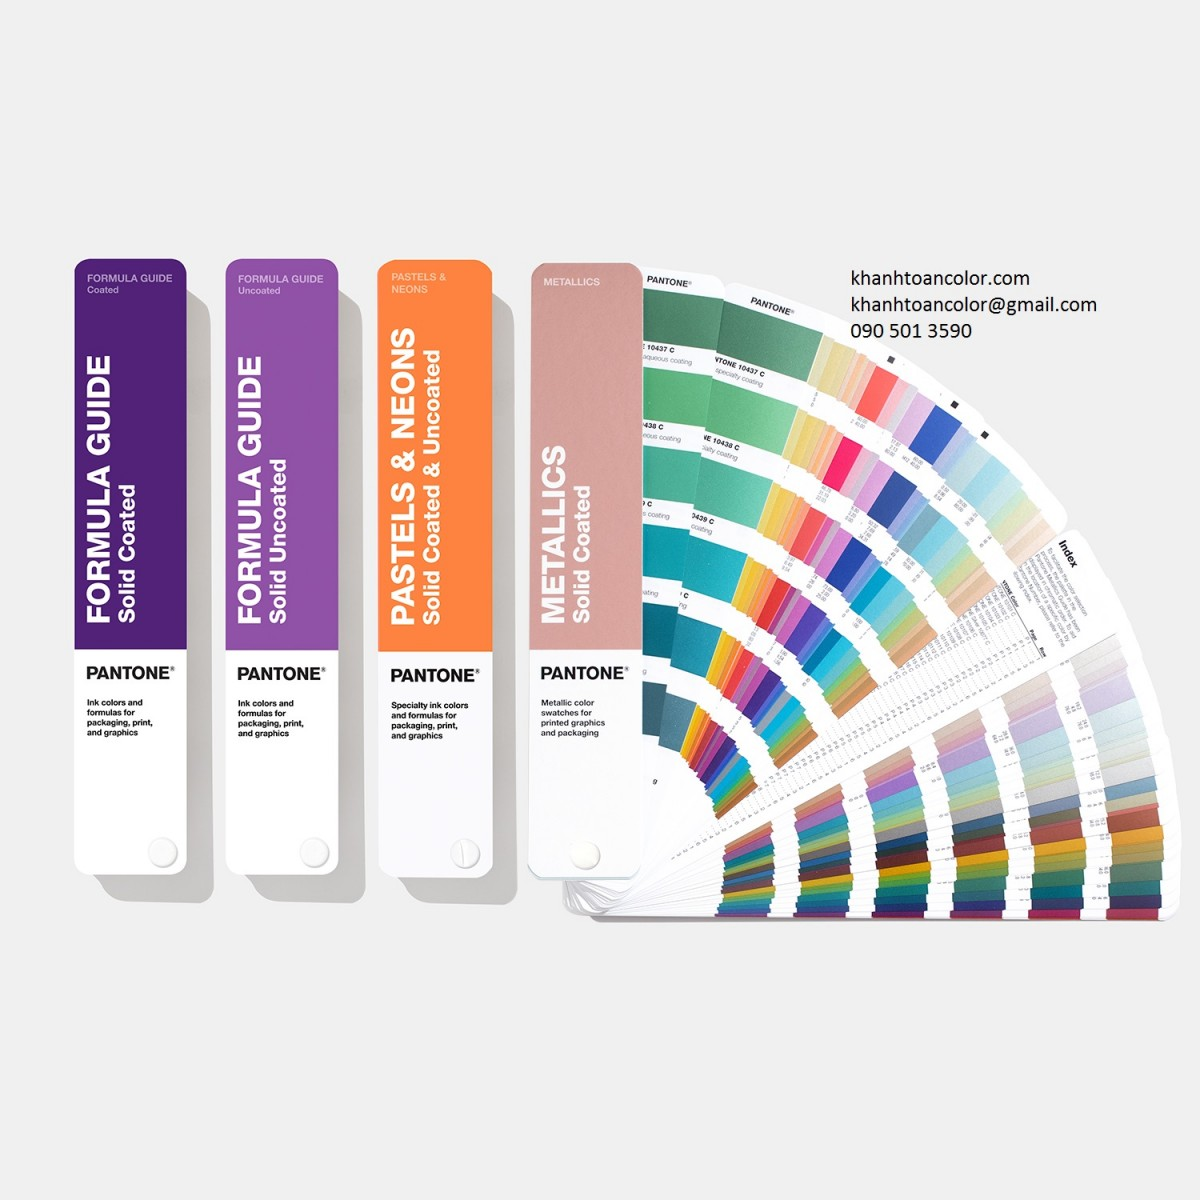 khanhtoancolor.com - Pantone Solid Guide Set GP1605A (New 2019) edit